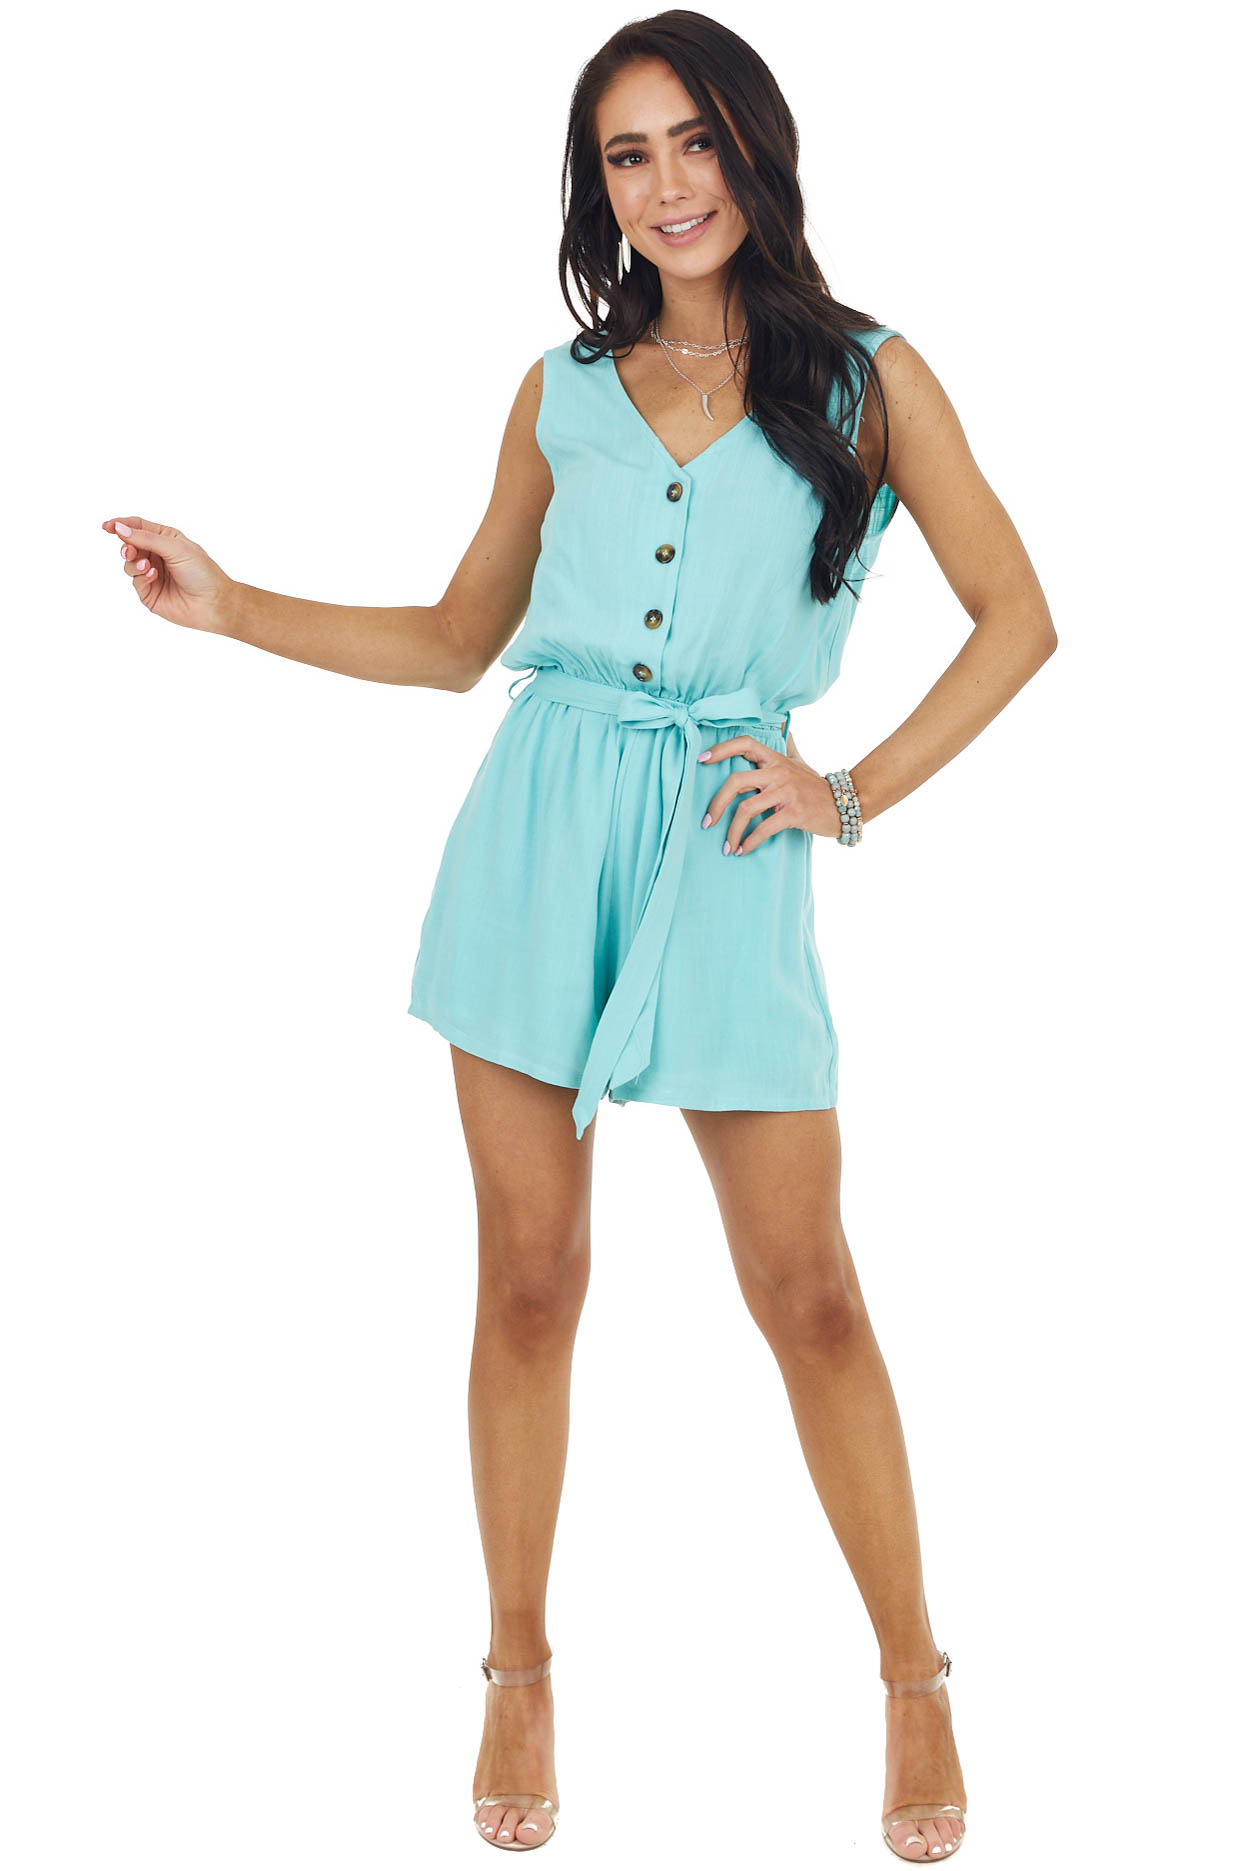 Teal Woven Sleeveless Button Up Romper with Front Tie